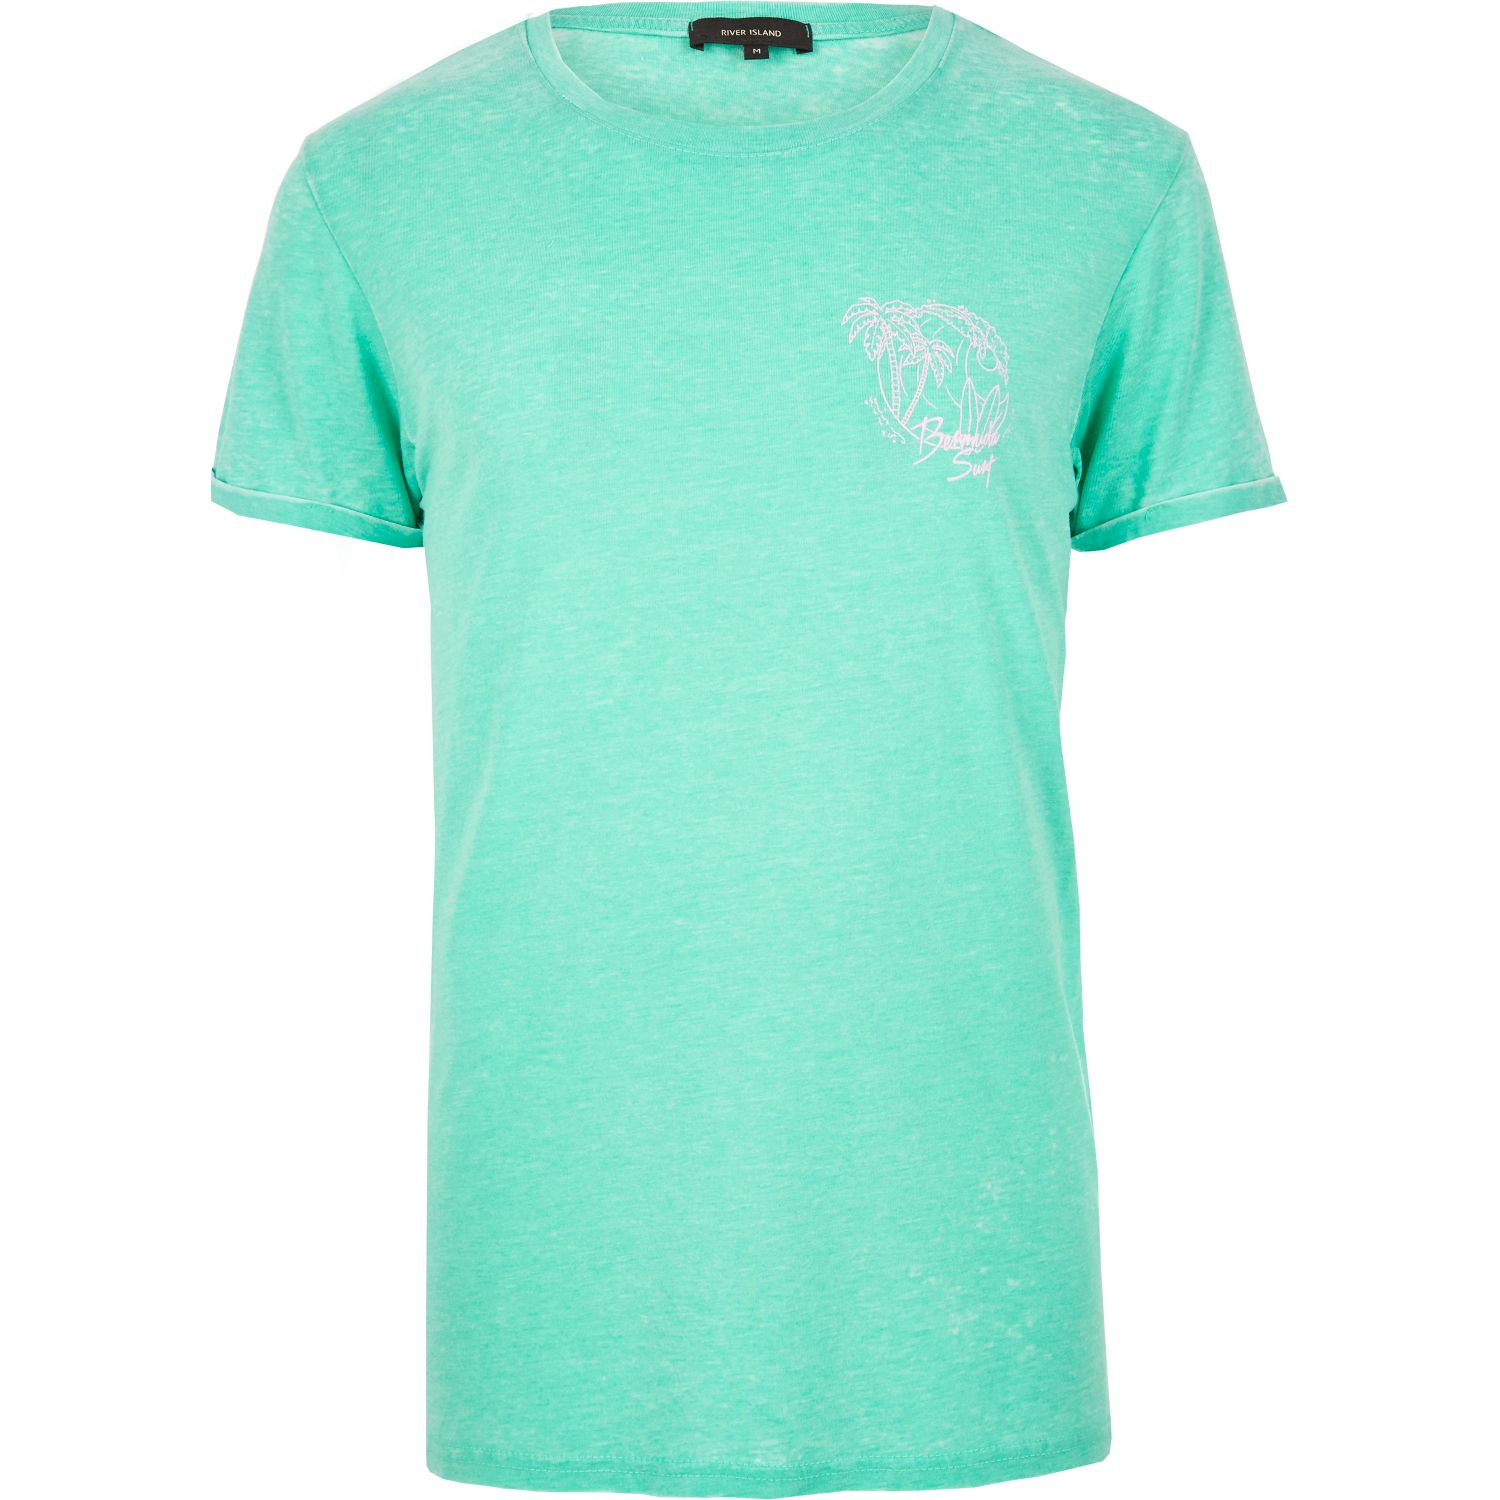 River island turquoise print bermuda t shirt in blue for for Aqua blue color t shirt